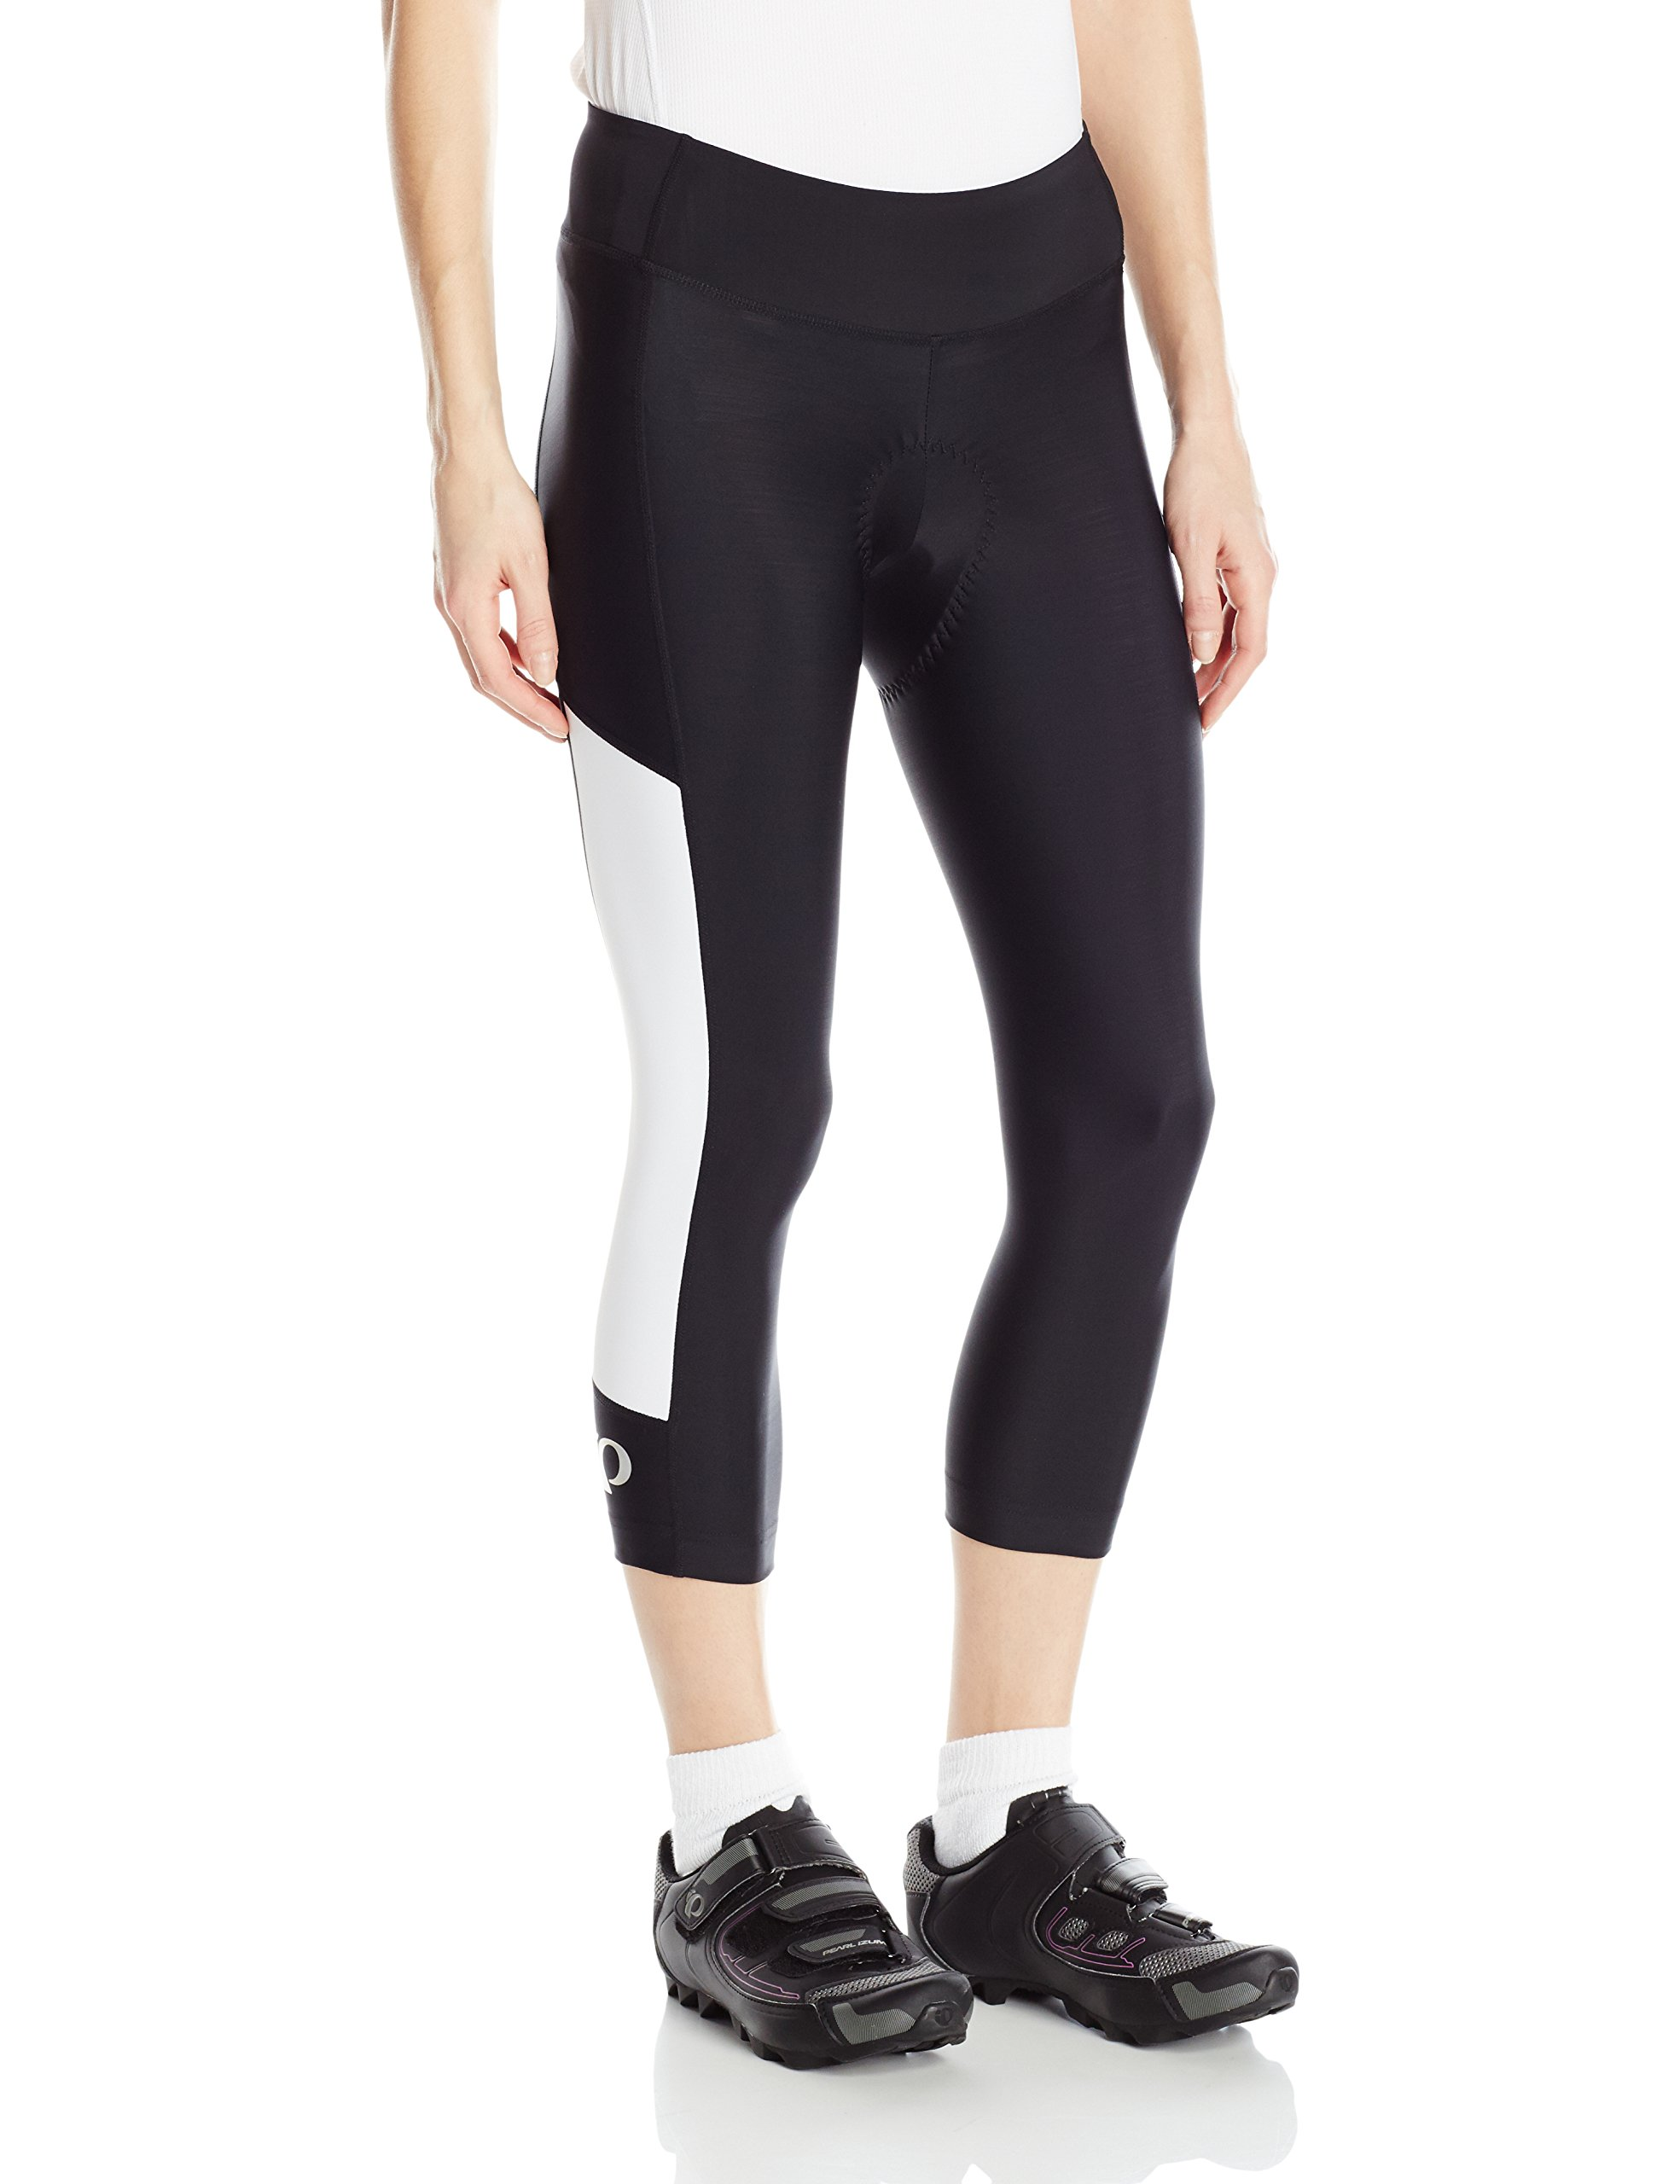 Pearl iZUMi Women's Escape Sugar CYC 3 Quarter Tights, Black/White, X-Small